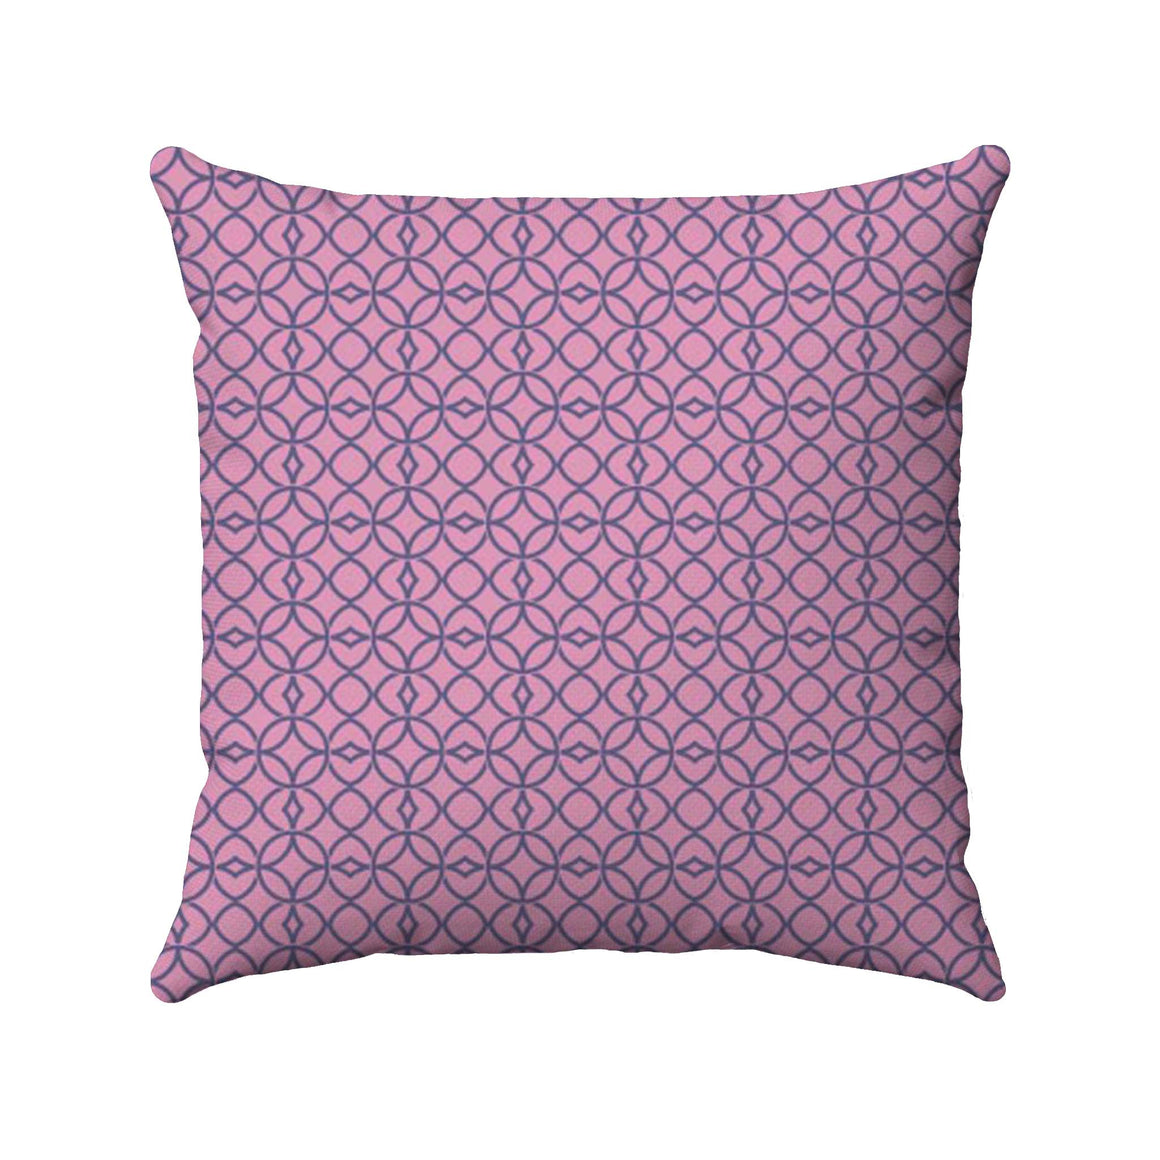 Classically intricate geometric design mixed with a vintage damask flair using a two-color line drawing of navy on a plum background